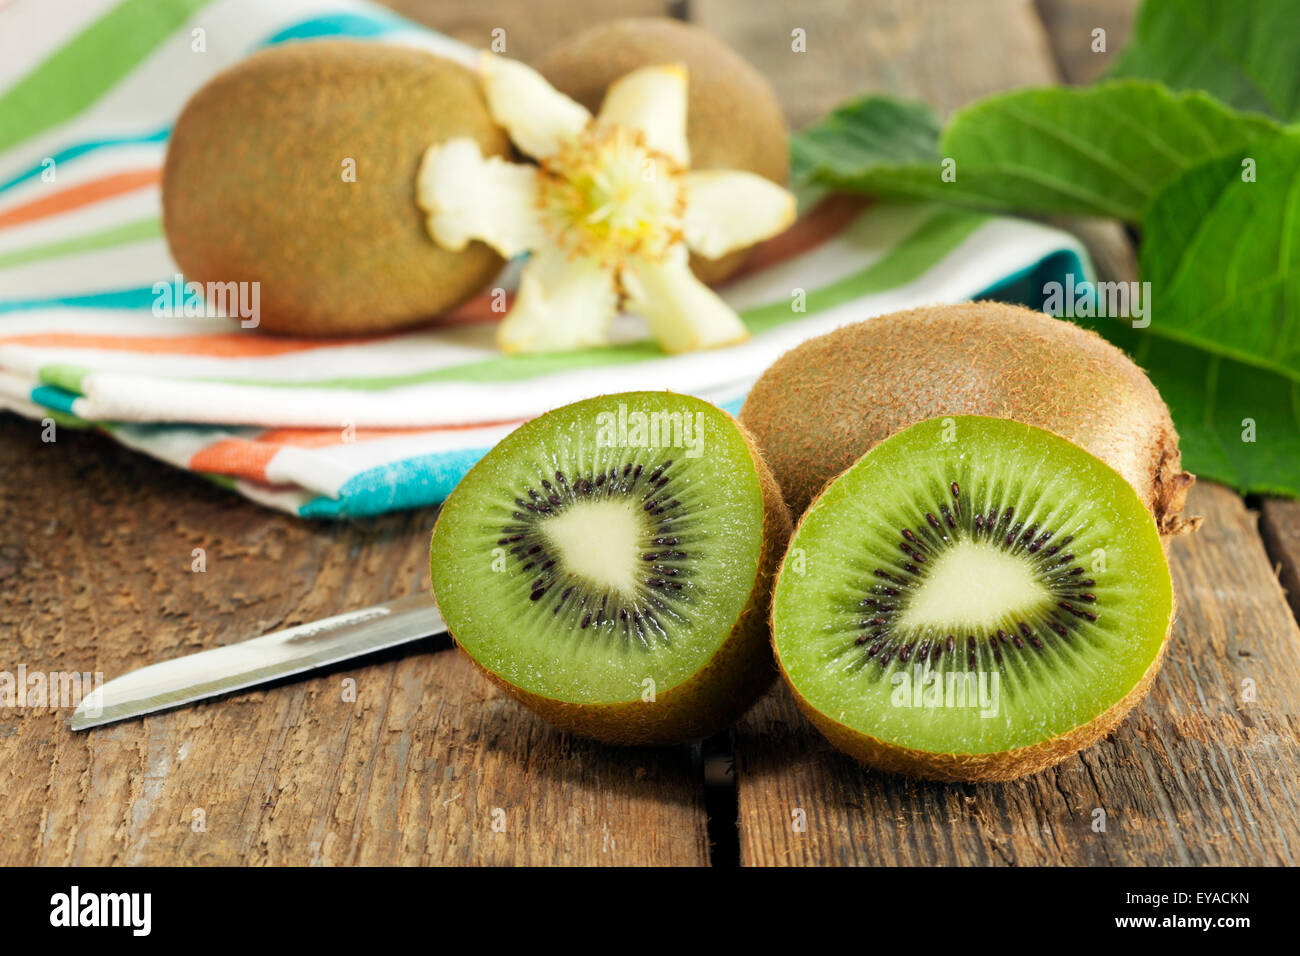 Whole and halved kiwi fruits with leaves and blossom on wooden table - Stock Image